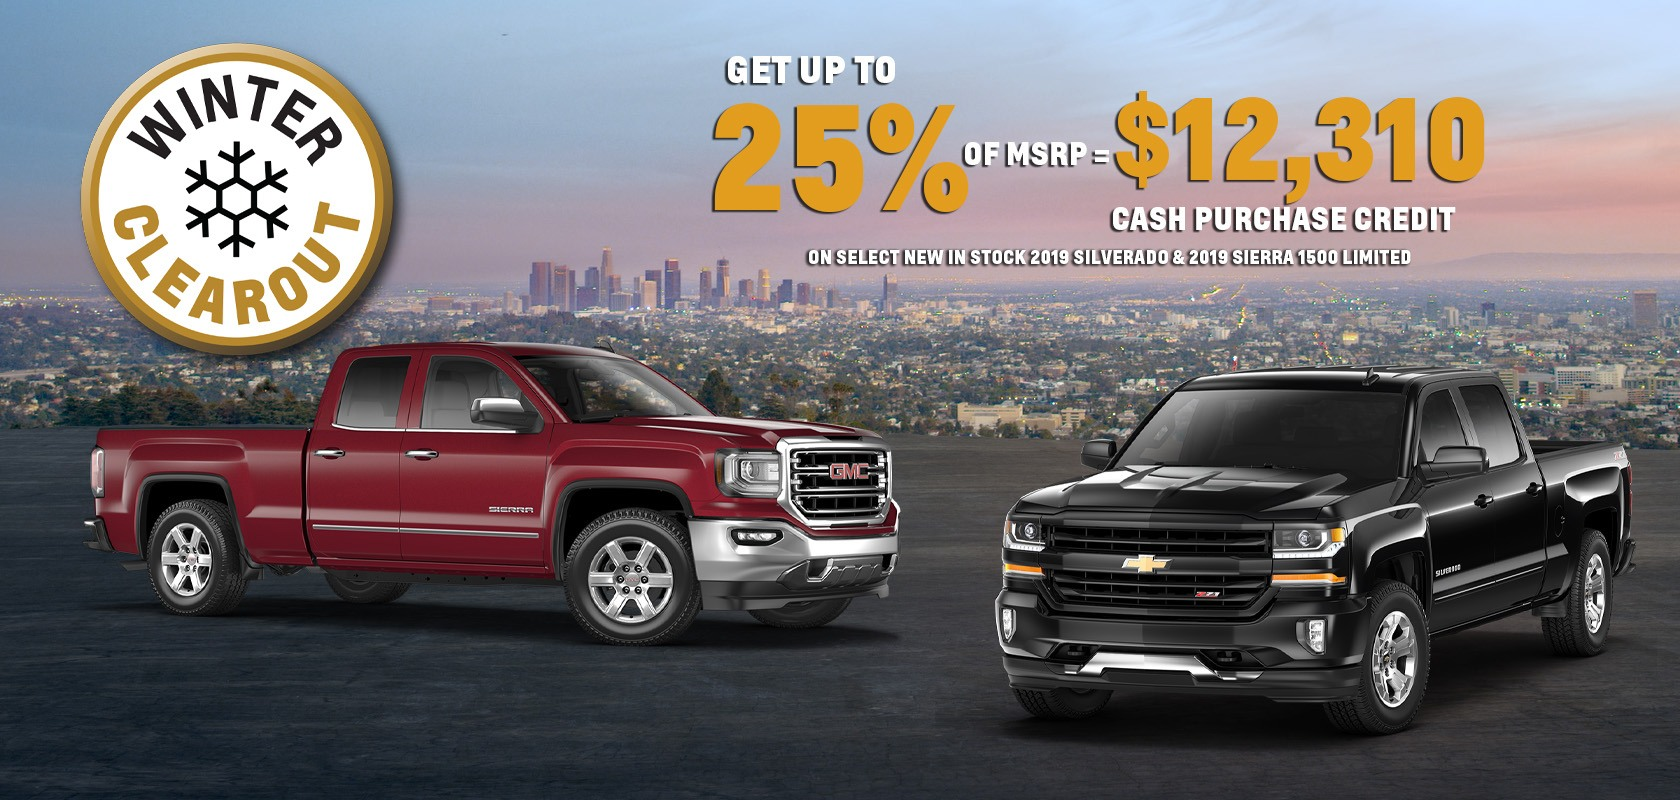 Get Up To 25% of MSRP on Select 2019 Sierra Limited & Silverado LD